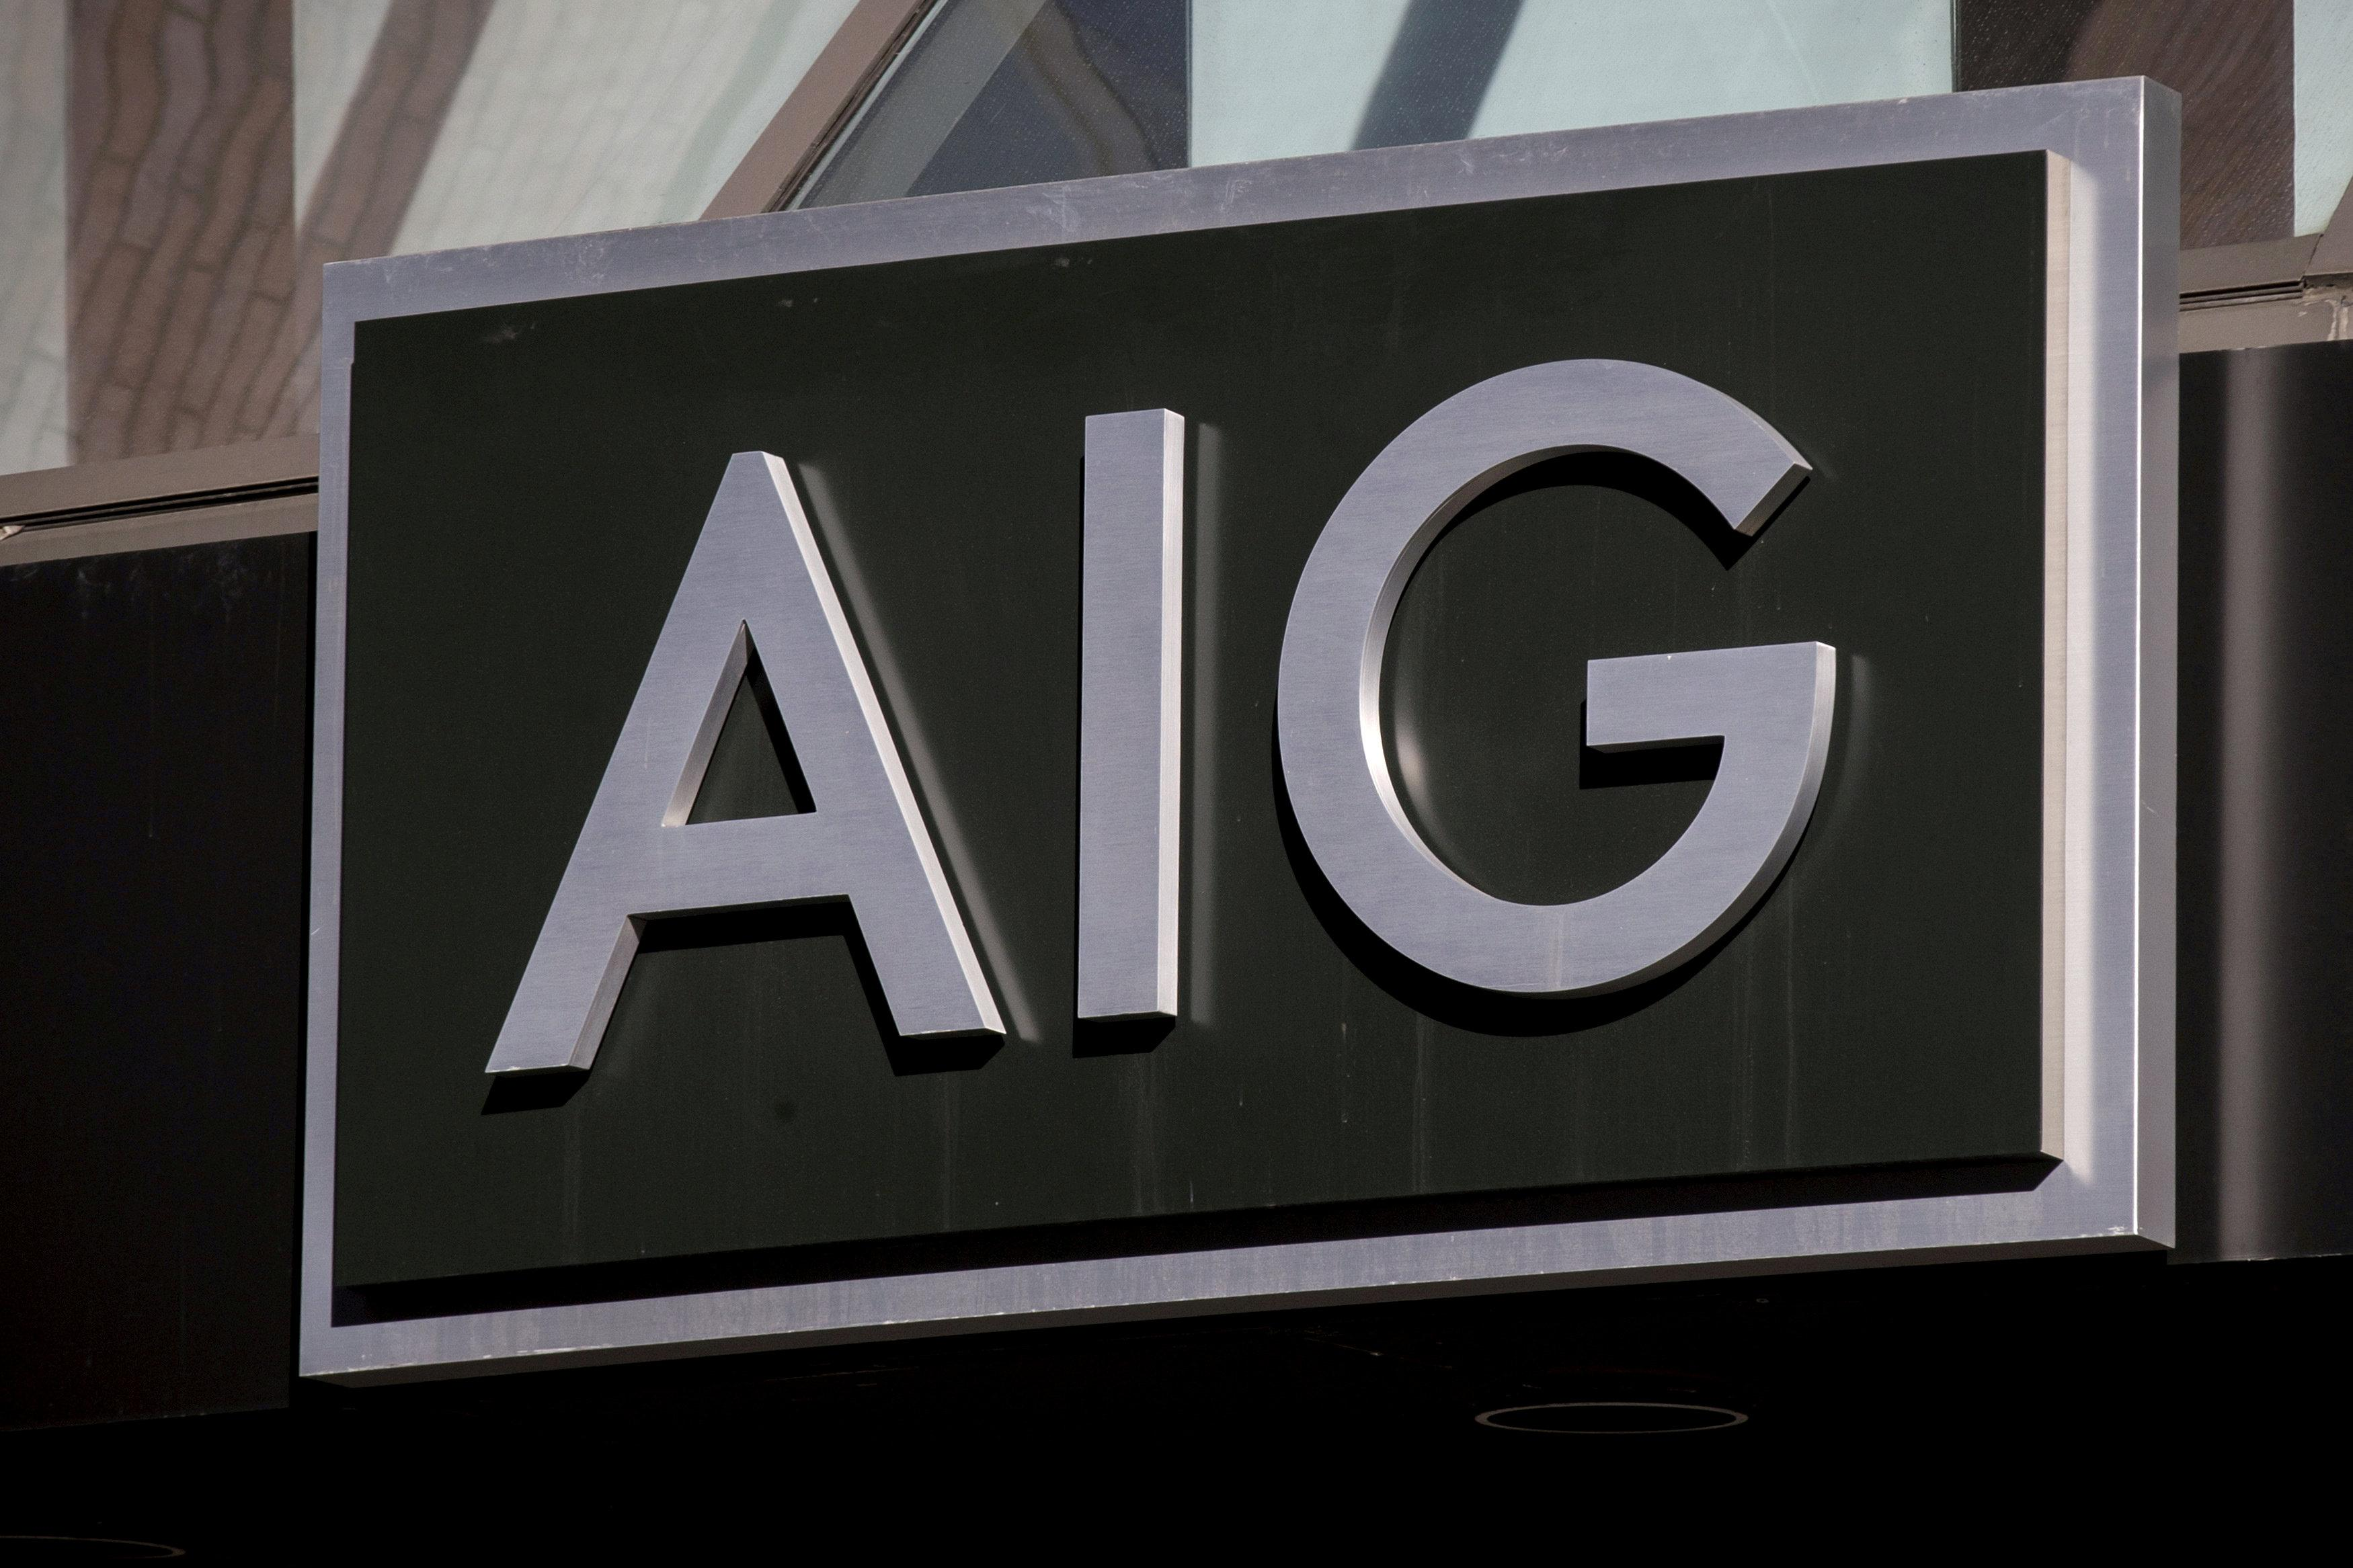 The AIG logo is seen at its building in New York's financial district in New York, NY, U.S. on March 19, 2015.   Brendan McDermid